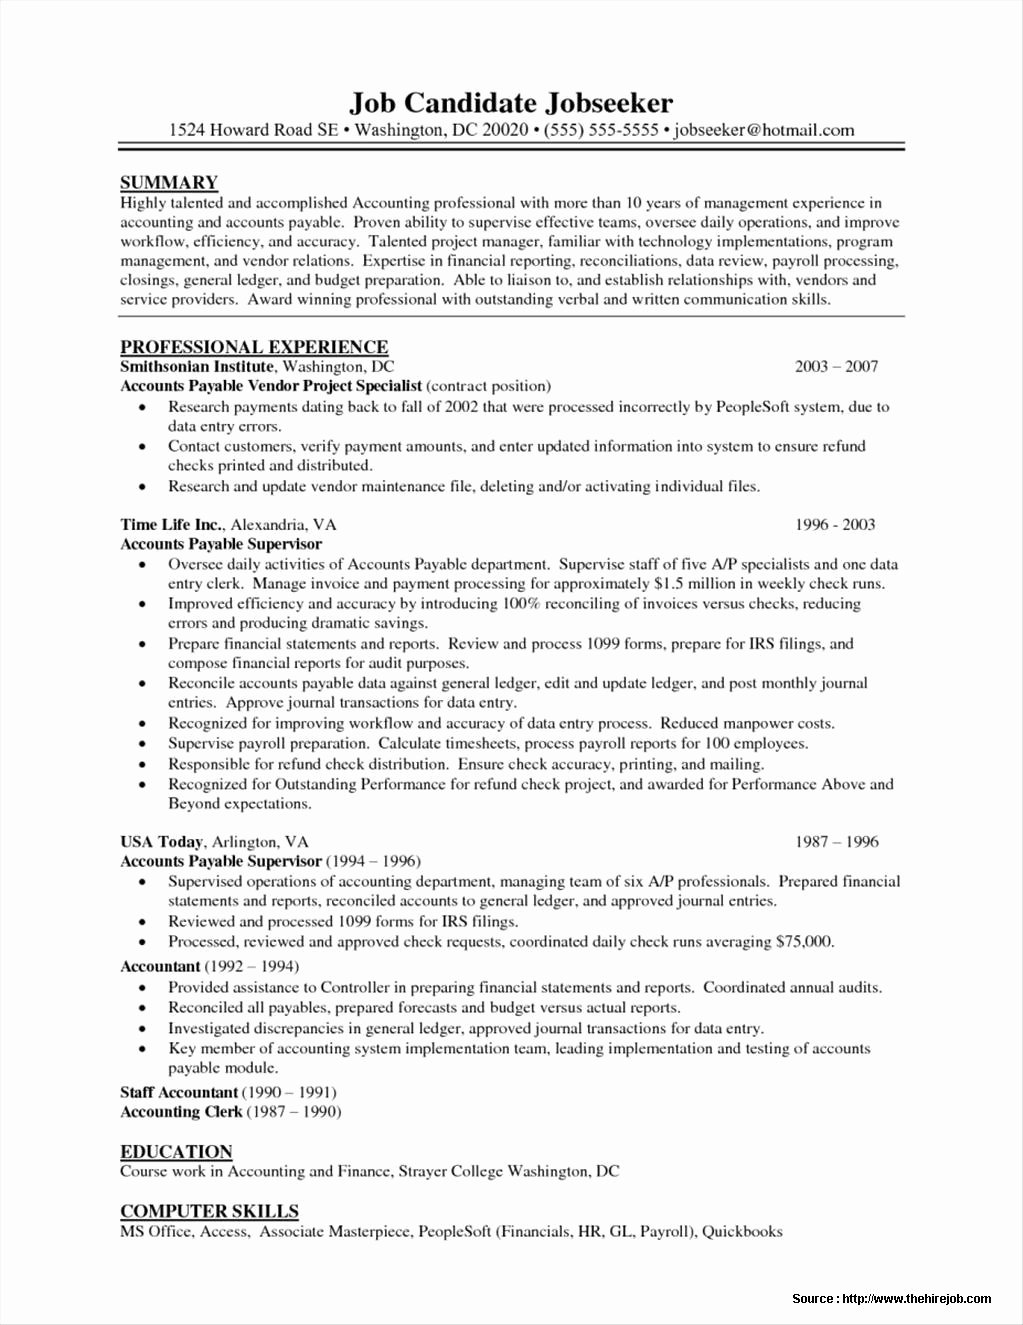 Resume Samples for Accounts Payable Resume Resume